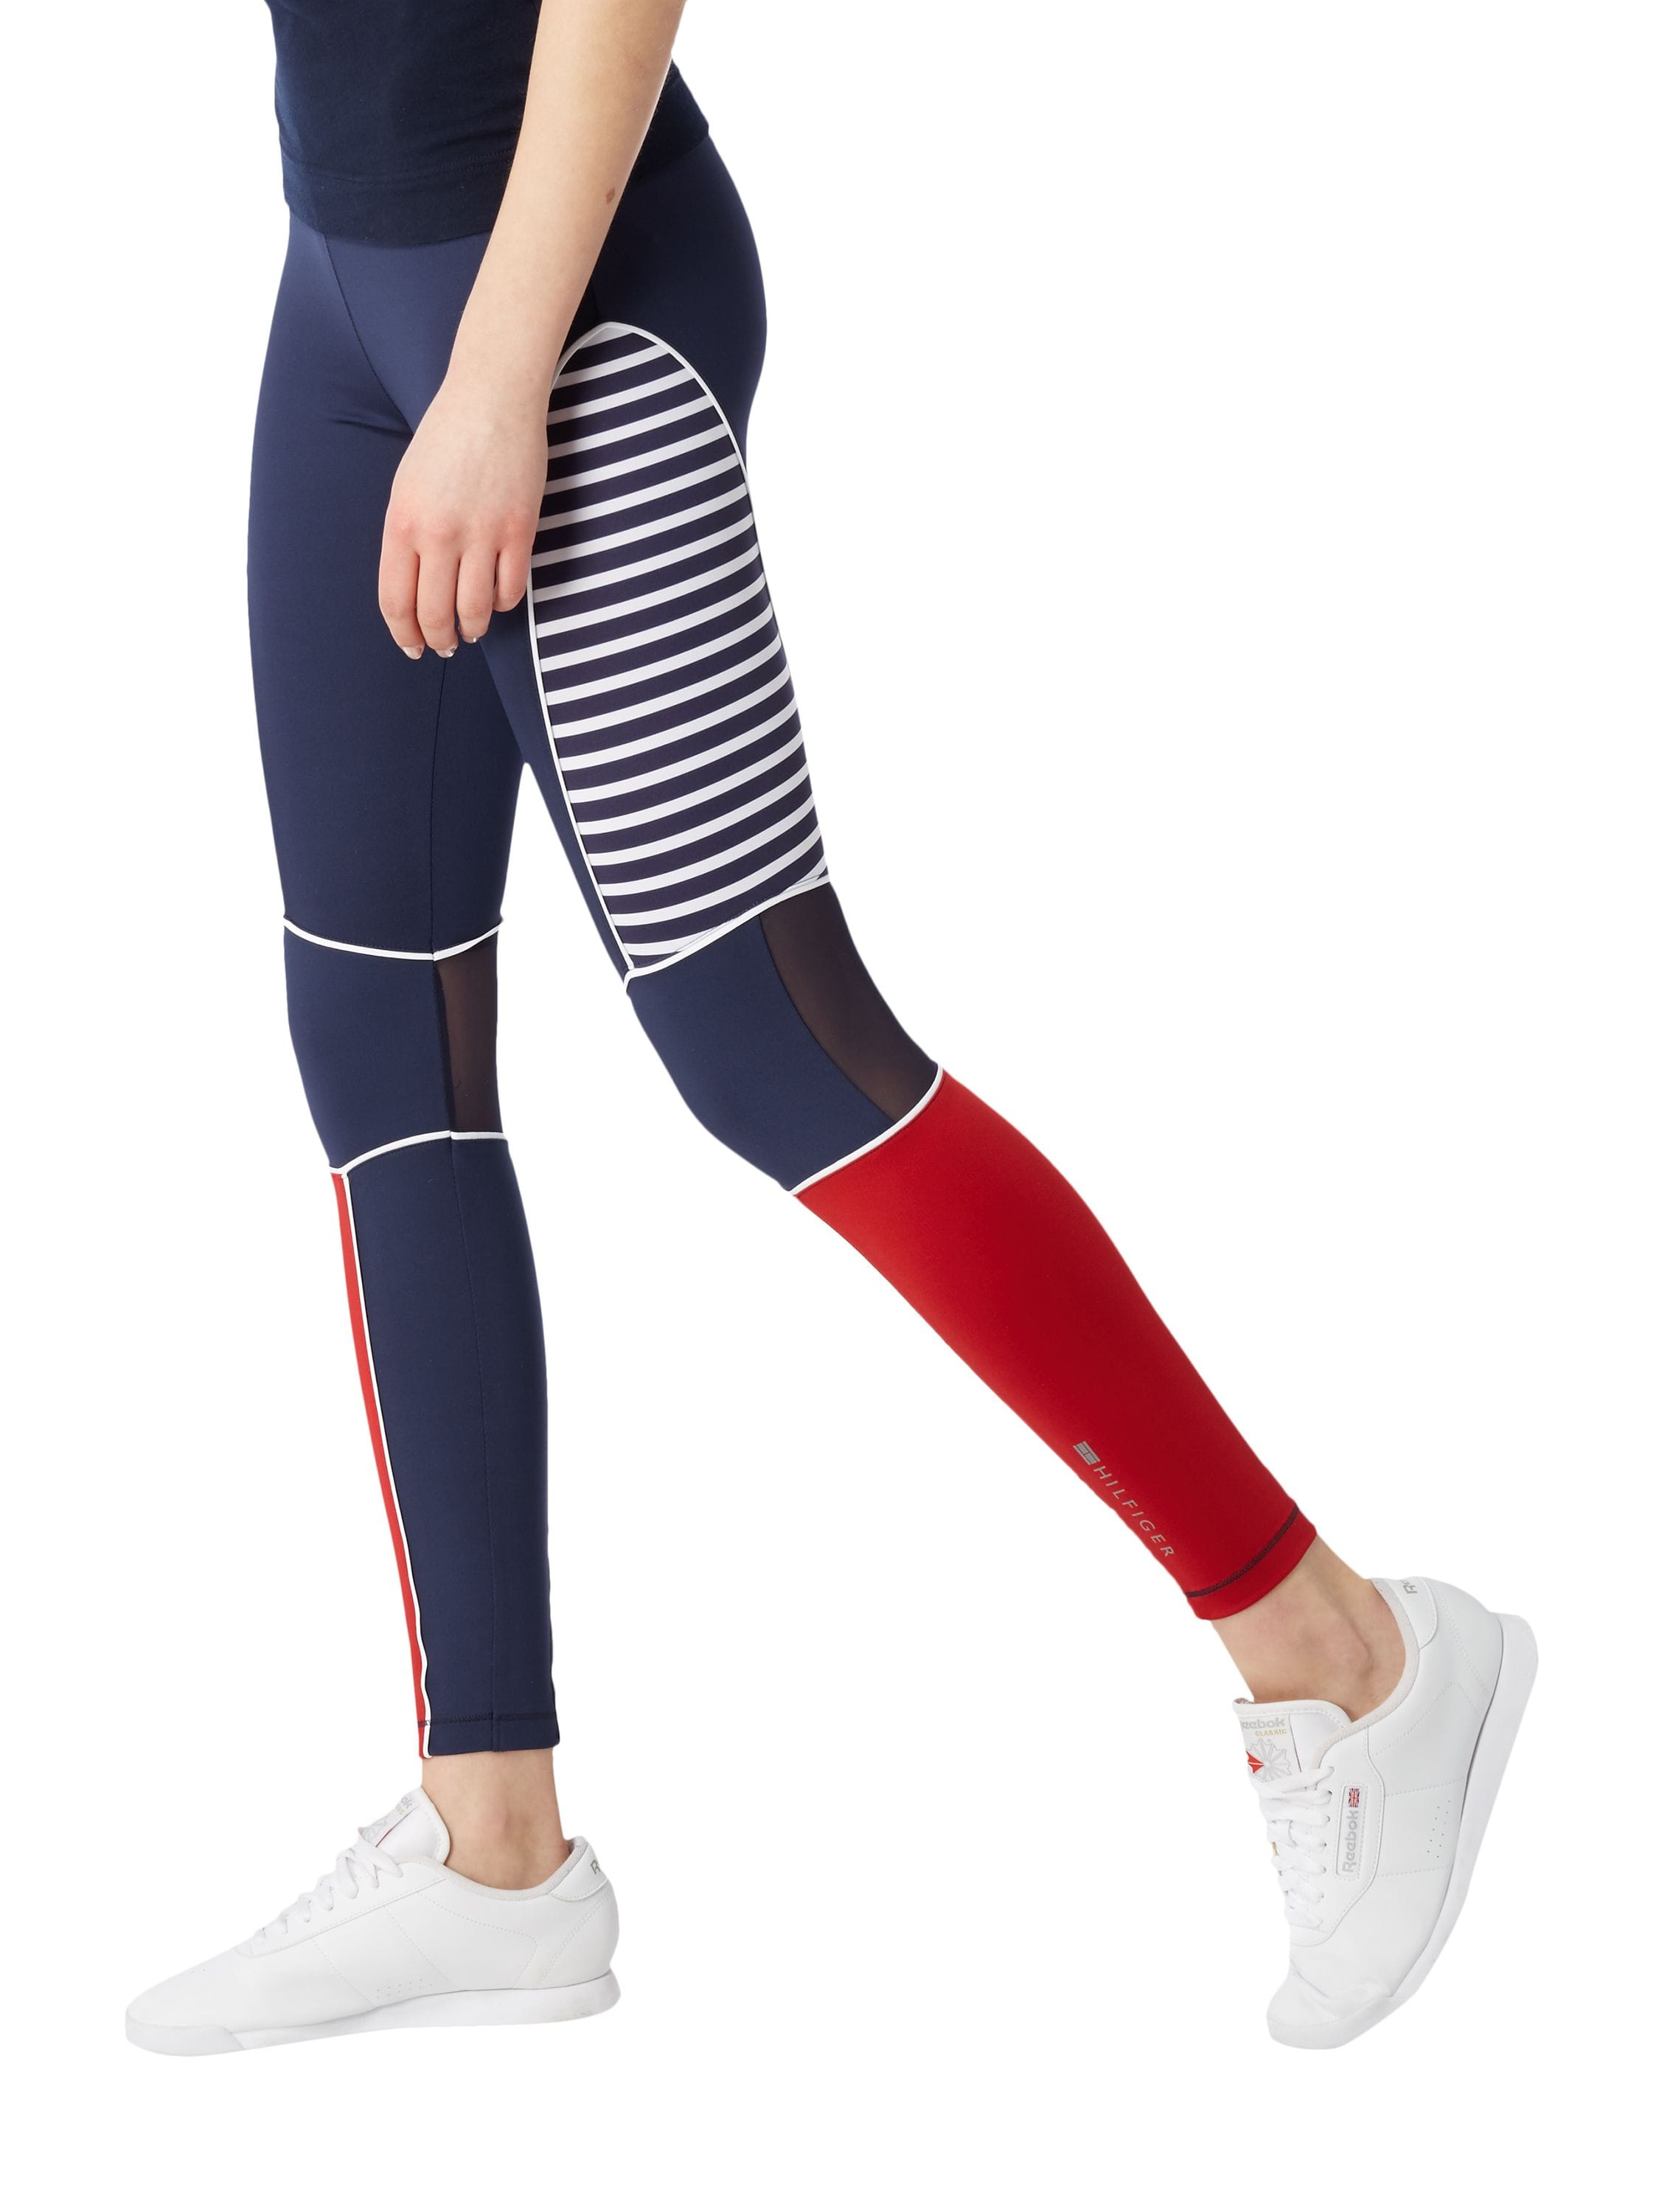 Tommy Hilfiger Womens Blue Rosemary Activewear Leggings Gym Pants Size S